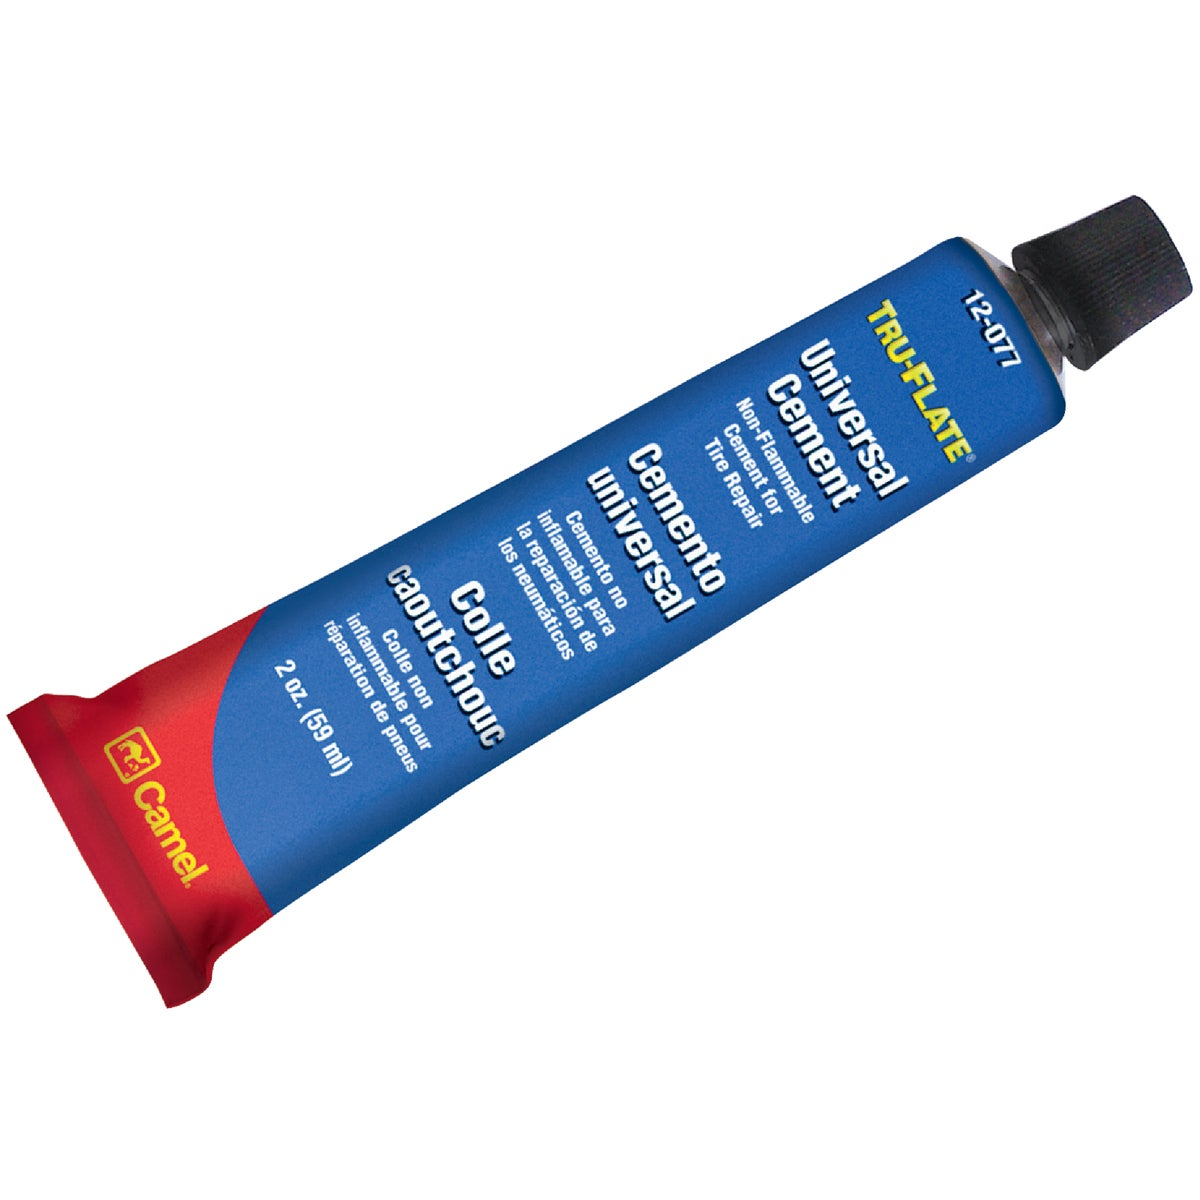 Nonflame Rubber Cement